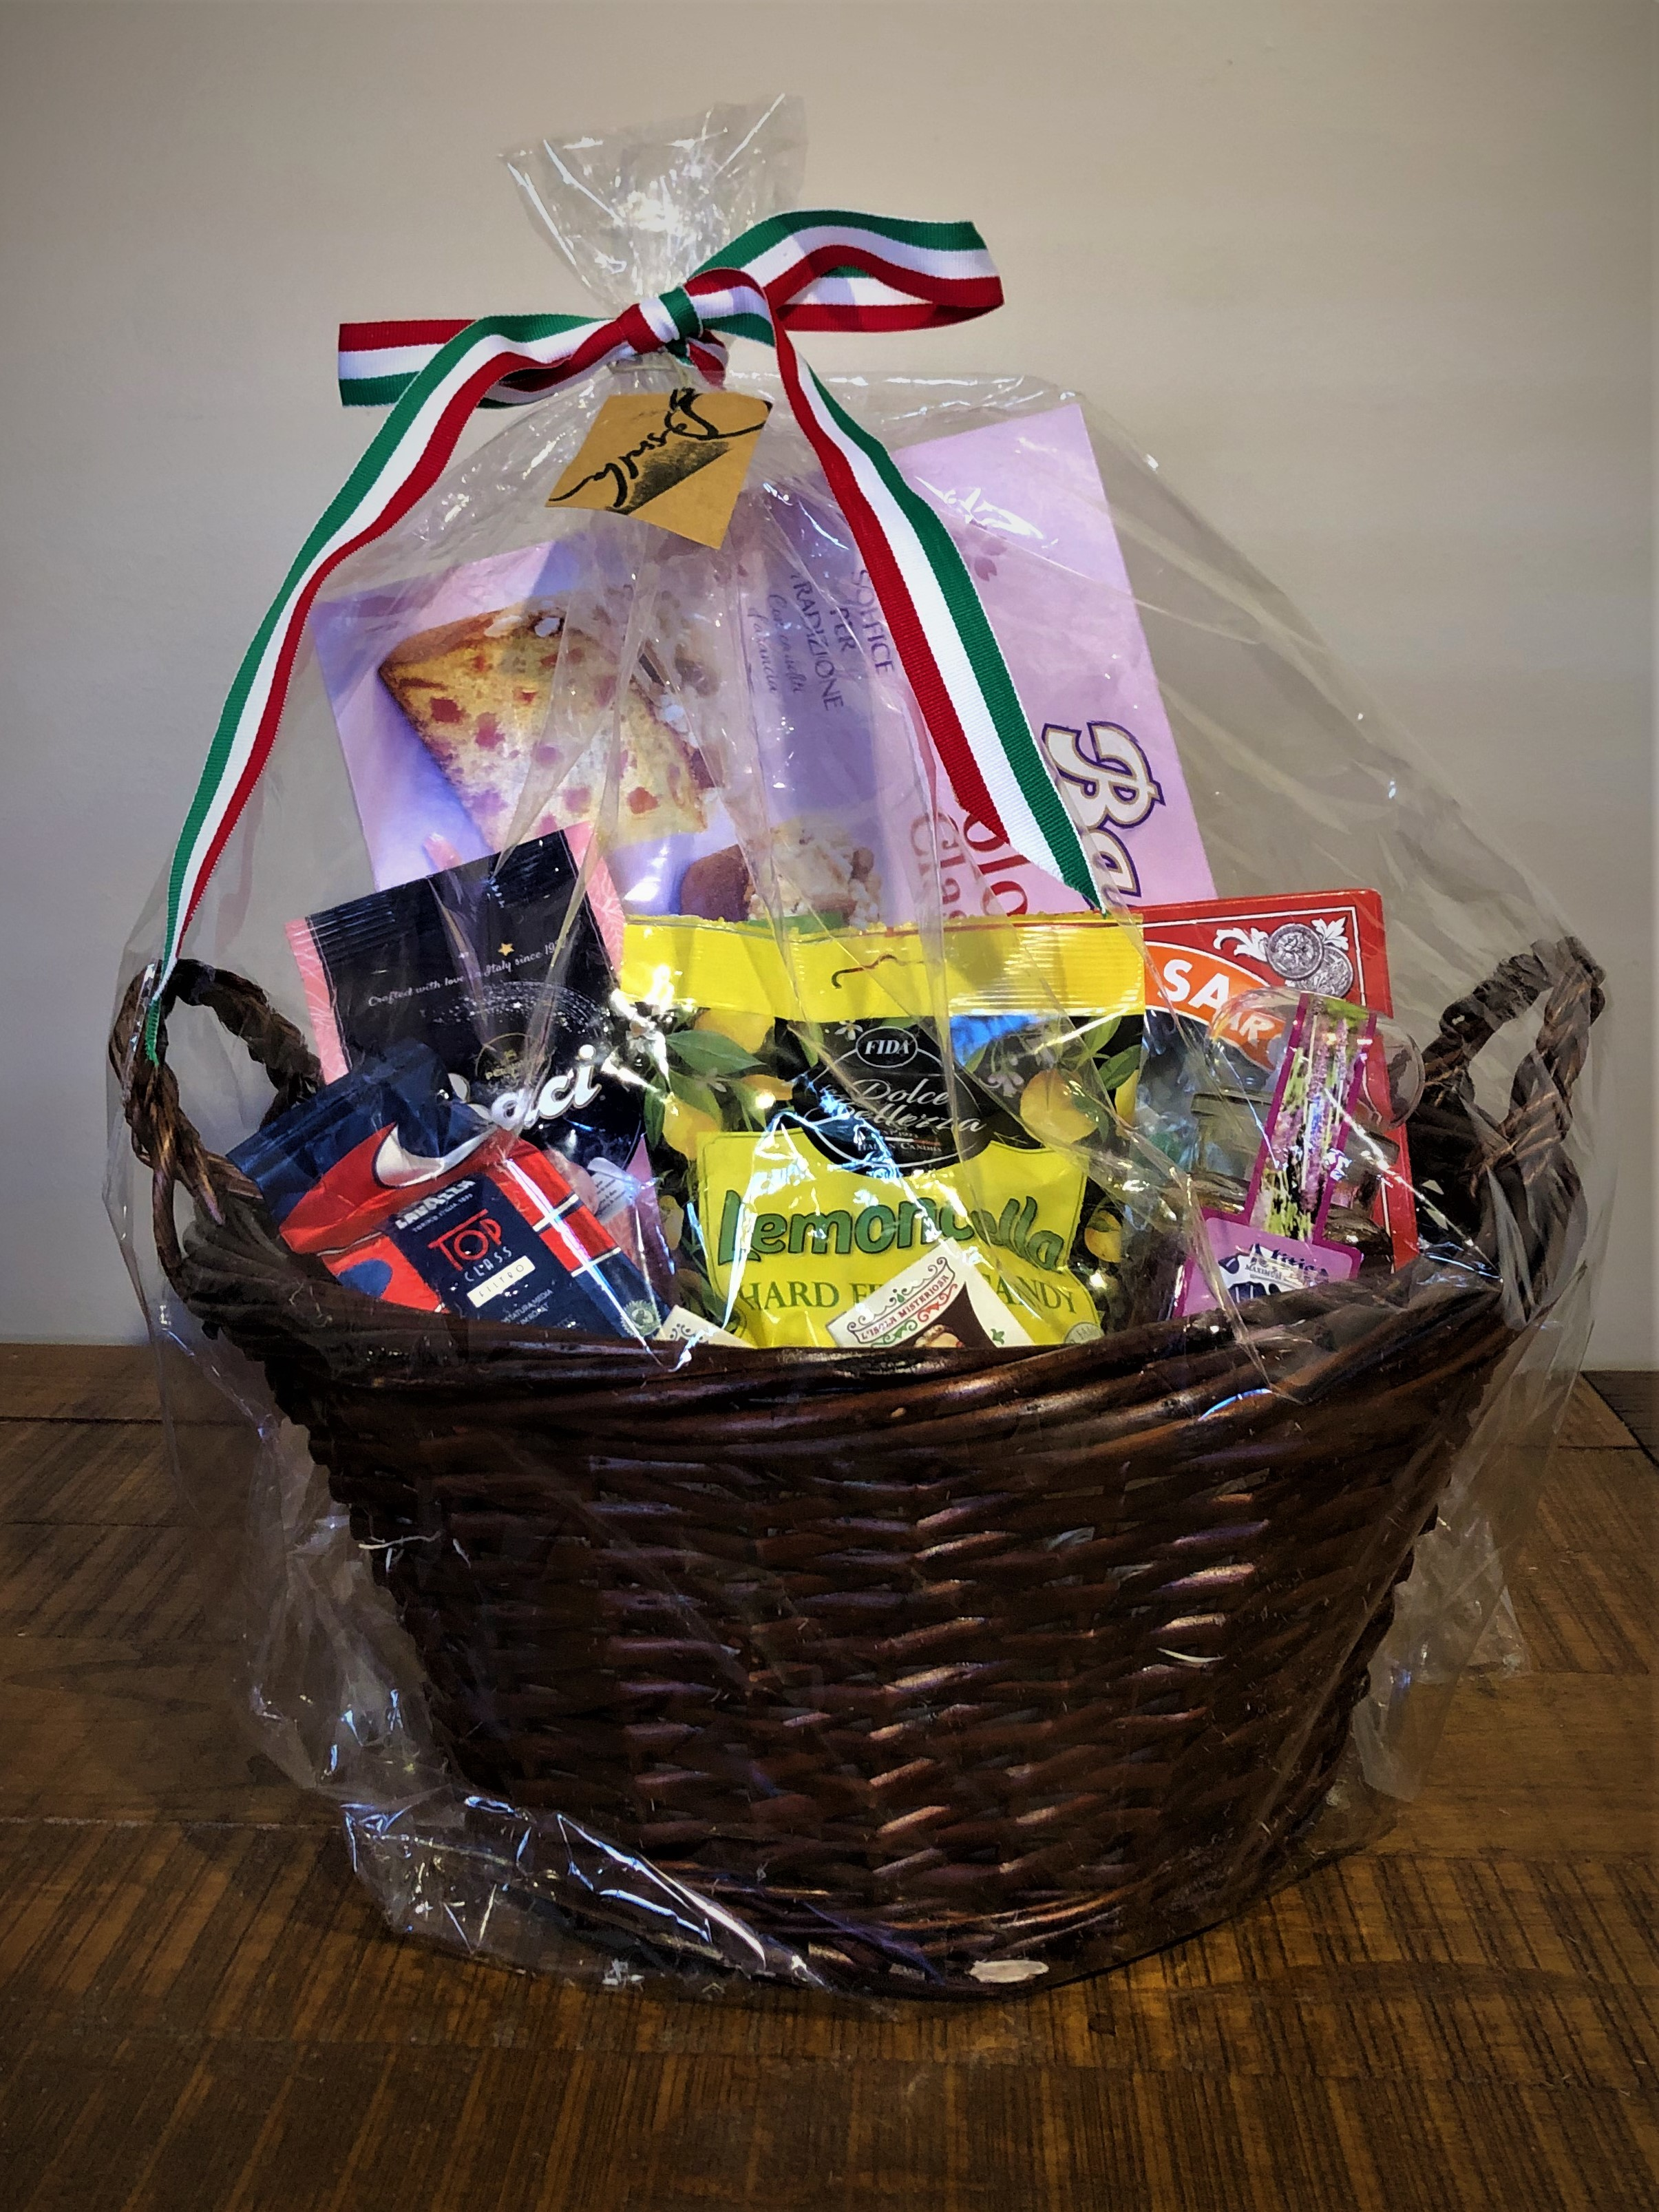 ORDER FESTIVE BASKETS FILLED WITH DELICIOUS TREATS BY MARCH 25TH FOR ON TIME EASTER DELIVERY